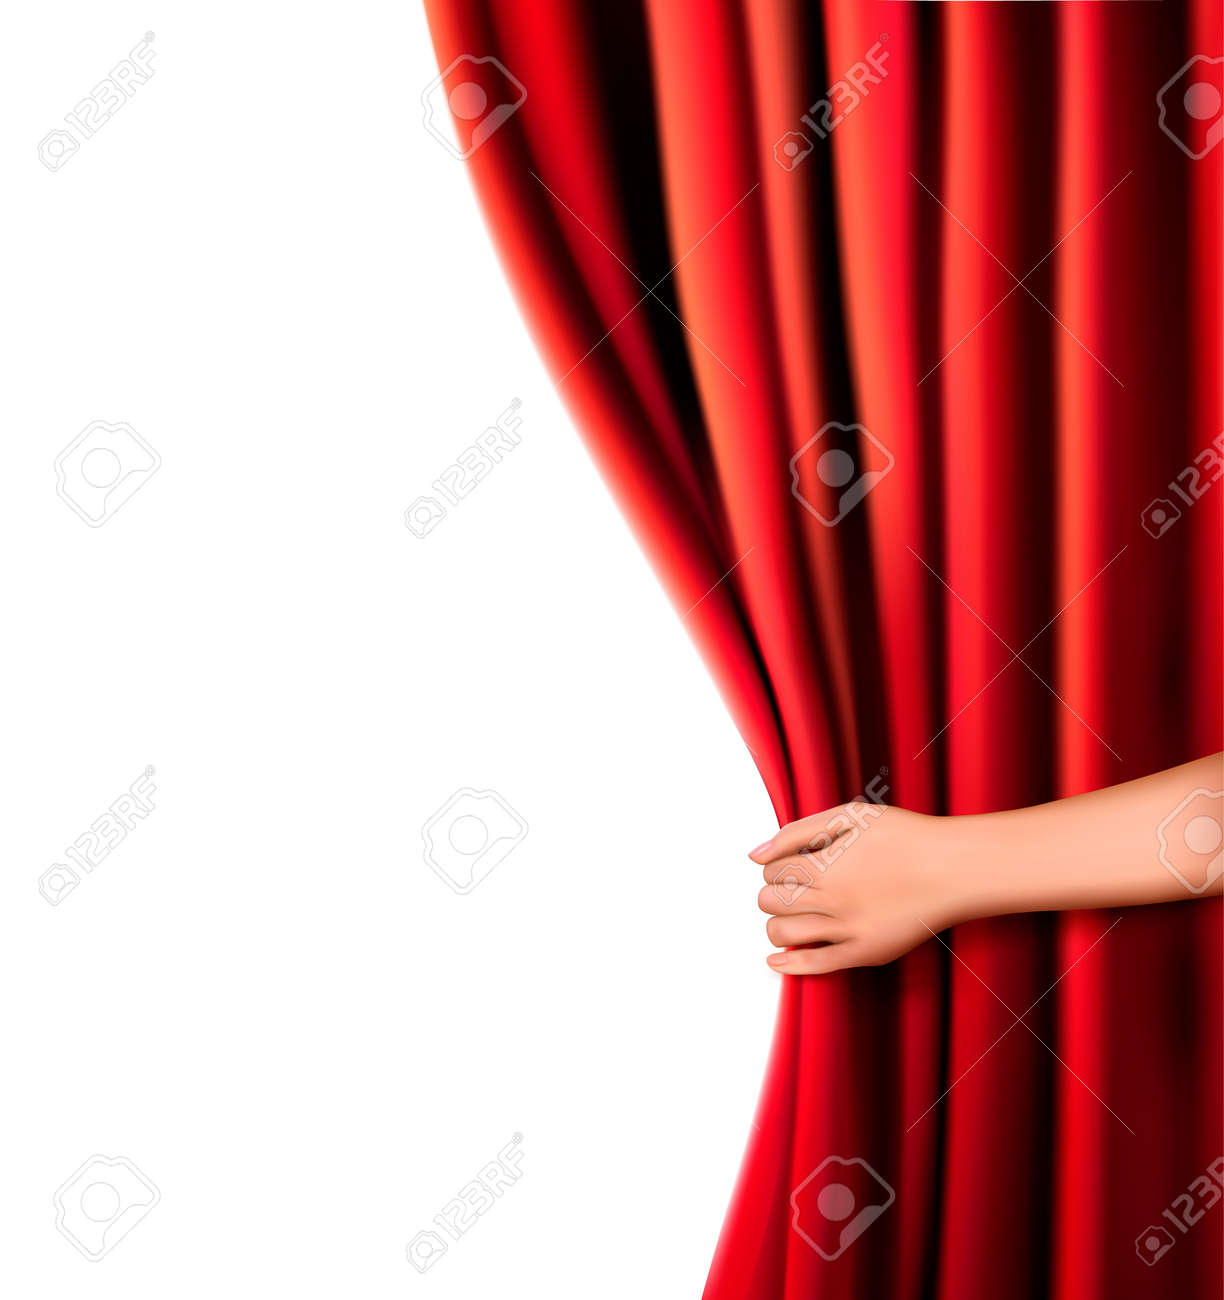 Theatre curtains png - Stage Curtains Clipart Png